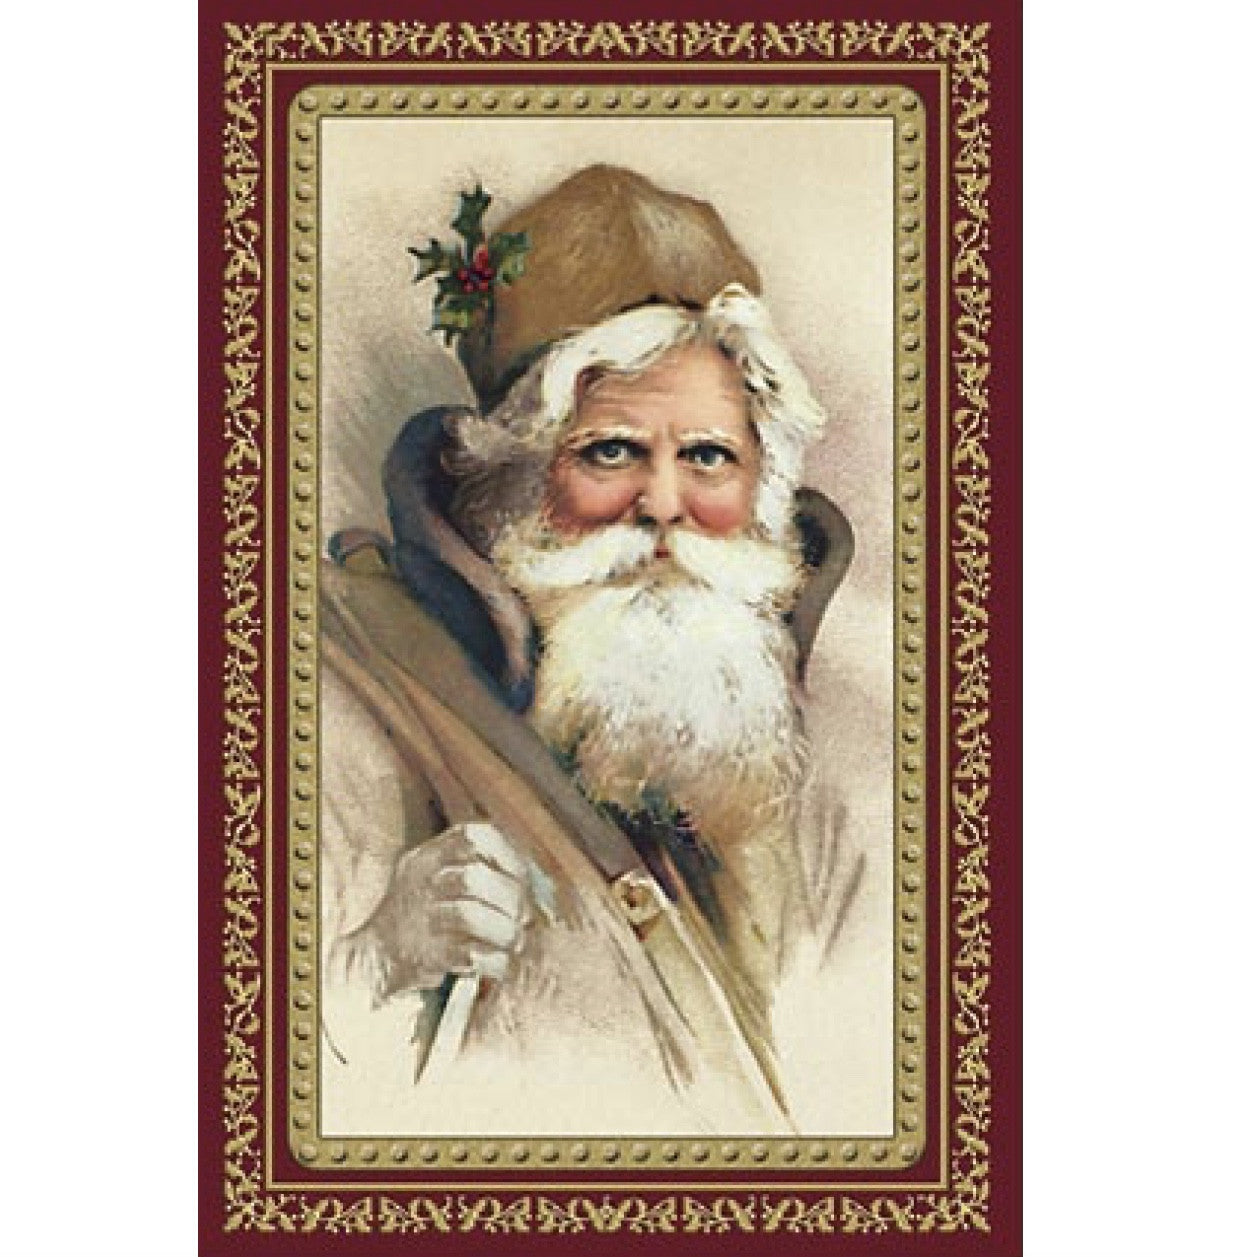 Old World Christmas Victorian Father Christmas Card - Le petite ...